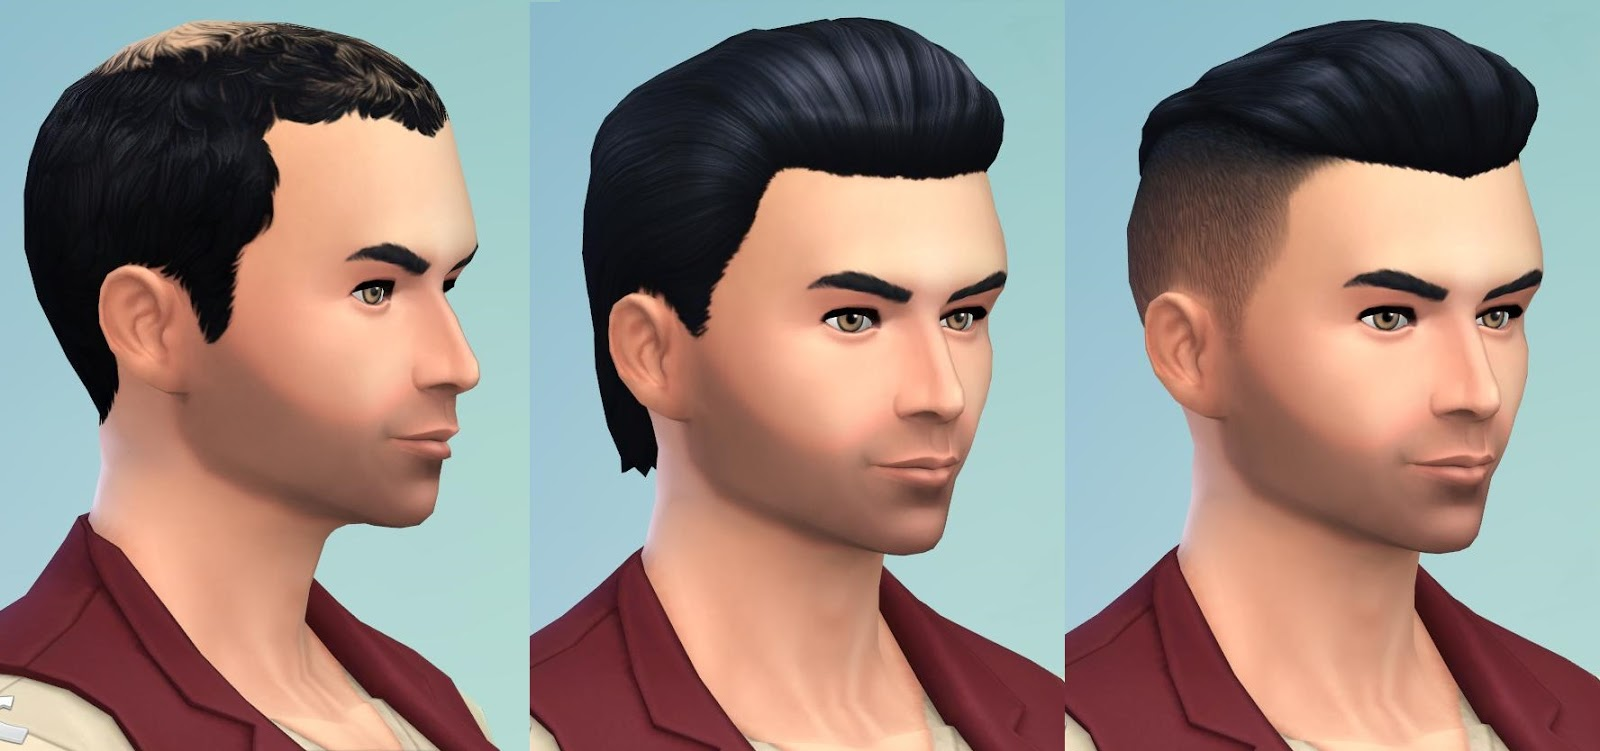 Sehr homme sims 4 RN96